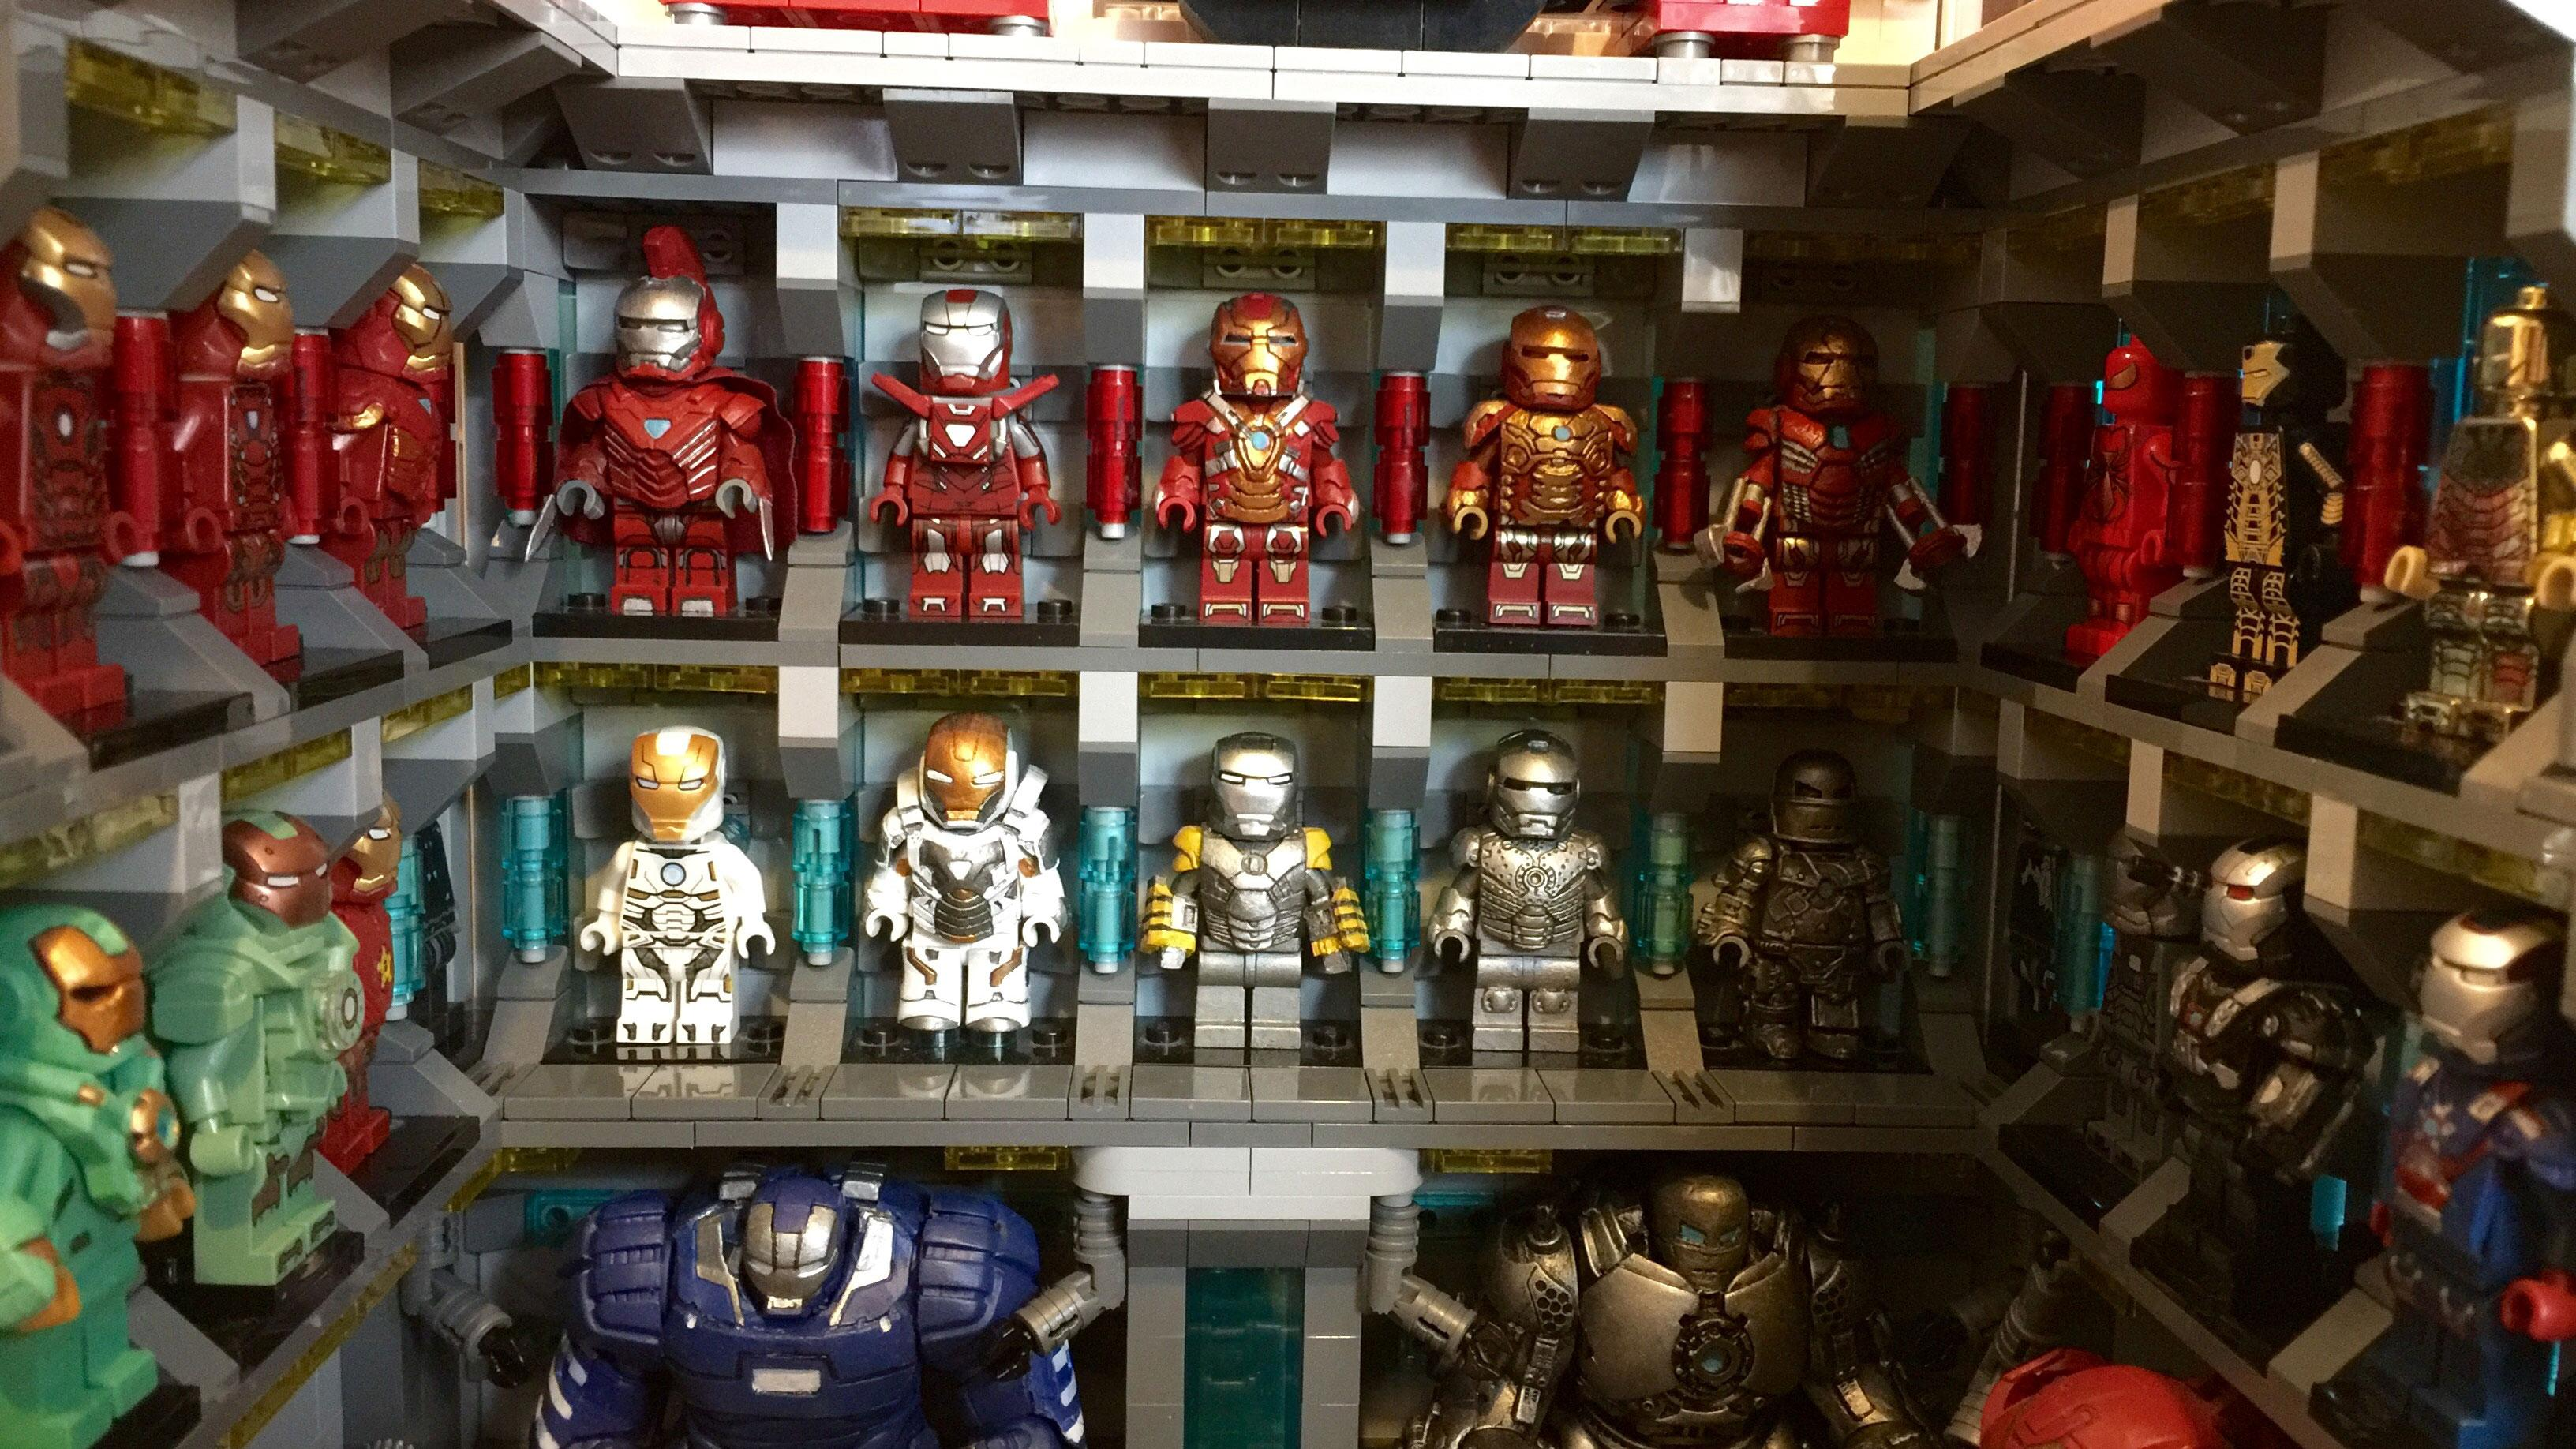 Lego versions of all the Iron Man suits would take so long to make